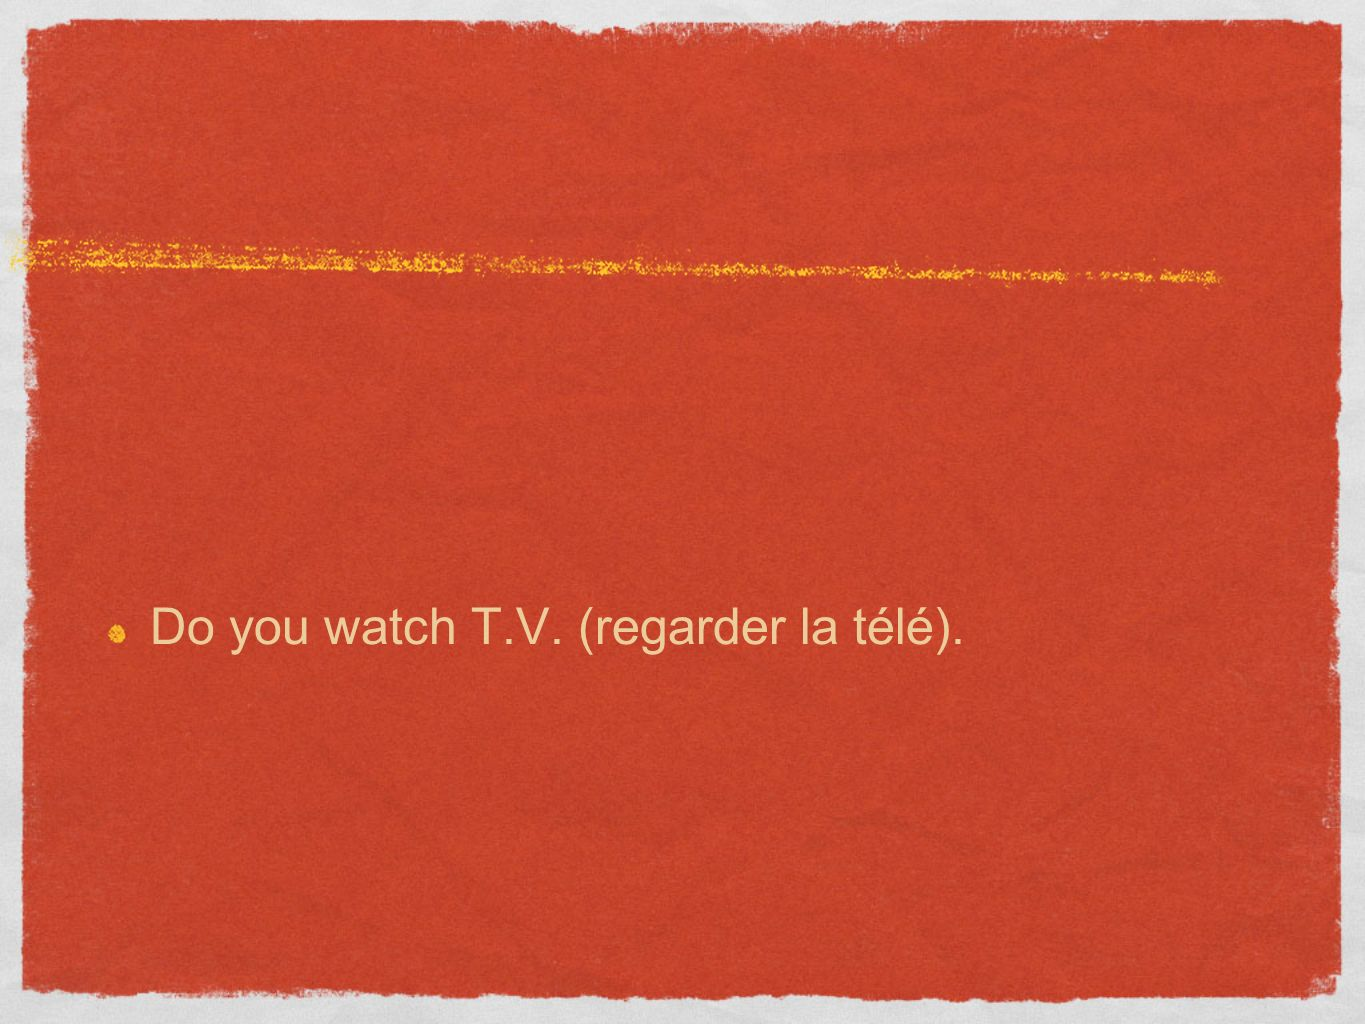 Do you watch T.V. (regarder la télé).